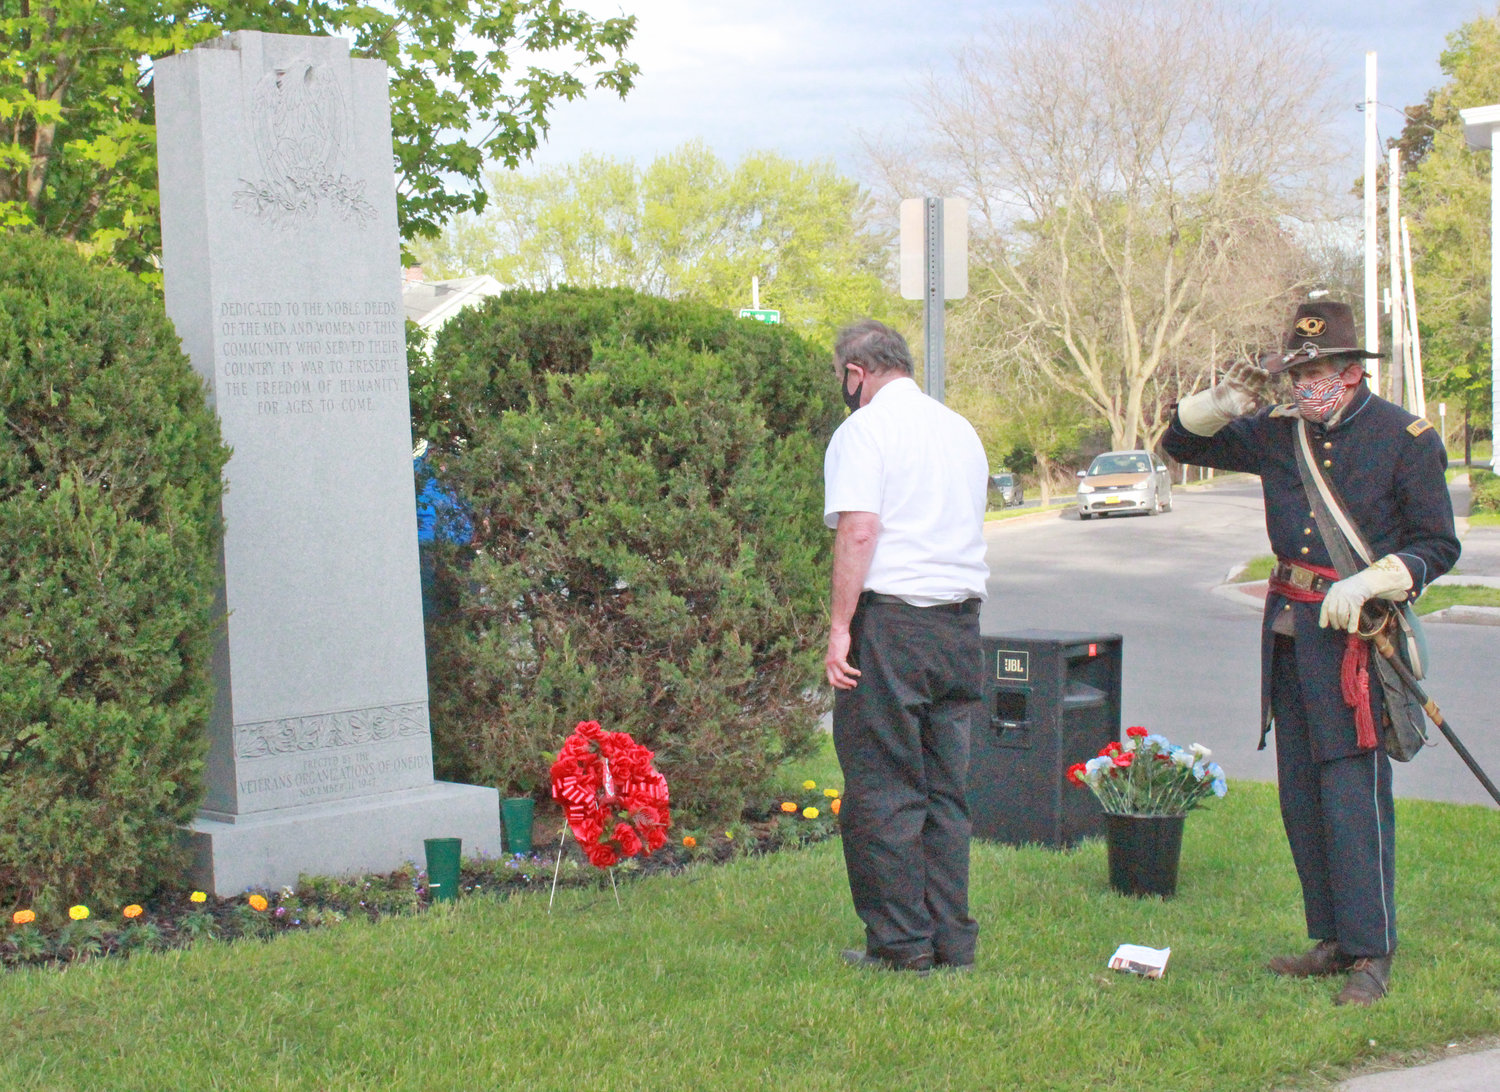 The American Legion Oneida Post 169 and Sons of the Union Veterans of the Civil War place the wreath at the Oneida Memorial Association Memorial Day observance event at Triangle Park on Friday.